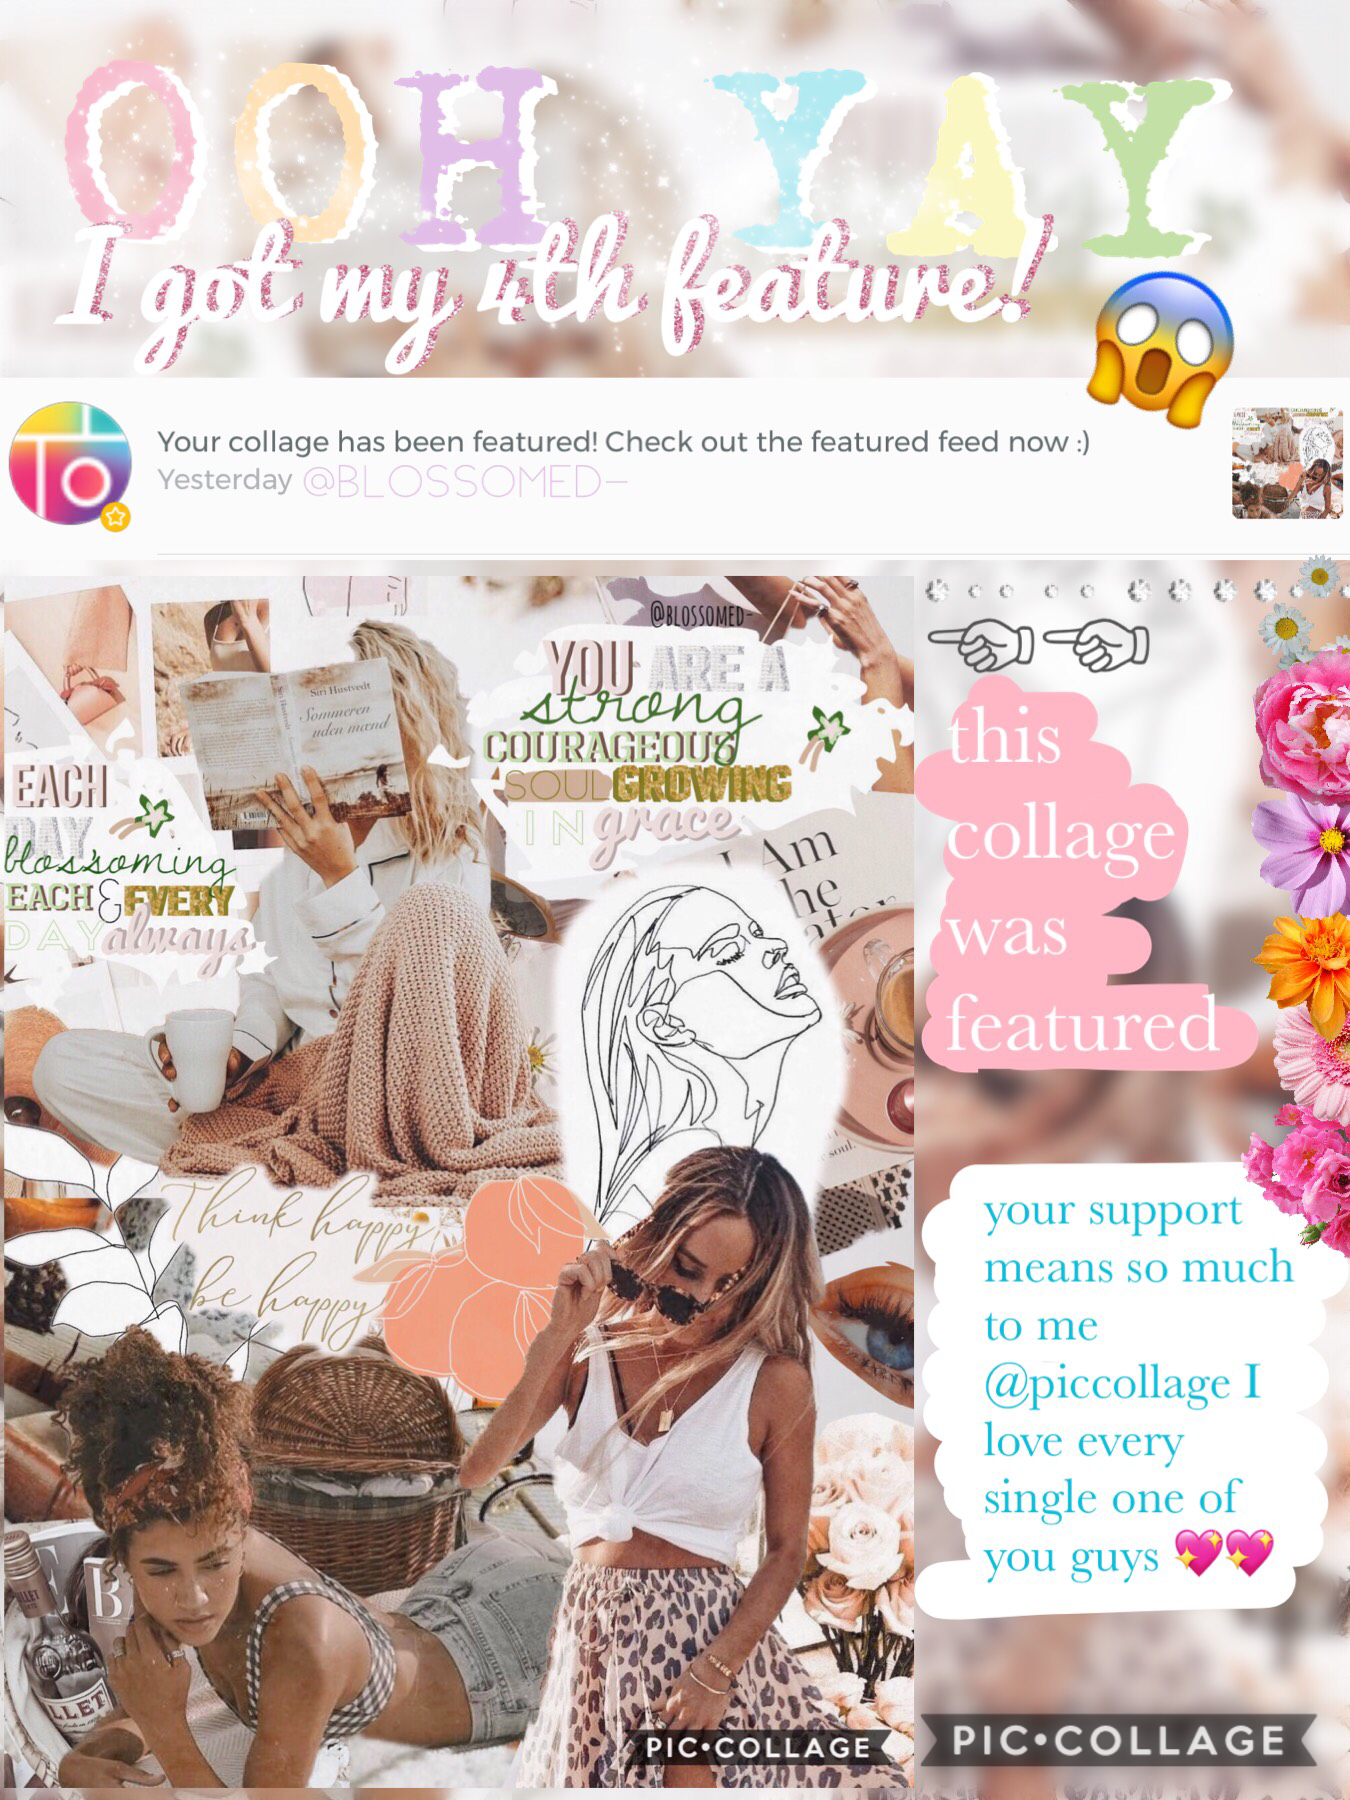 hiya everyone🌿 whoa I'm so grateful for this💖 it means the world to me literally⚡️🍋 pic collage is really important to me so thank you for making it special for me🍡🌞 yee a new edit coming soon!! get exciteddd haha🥰